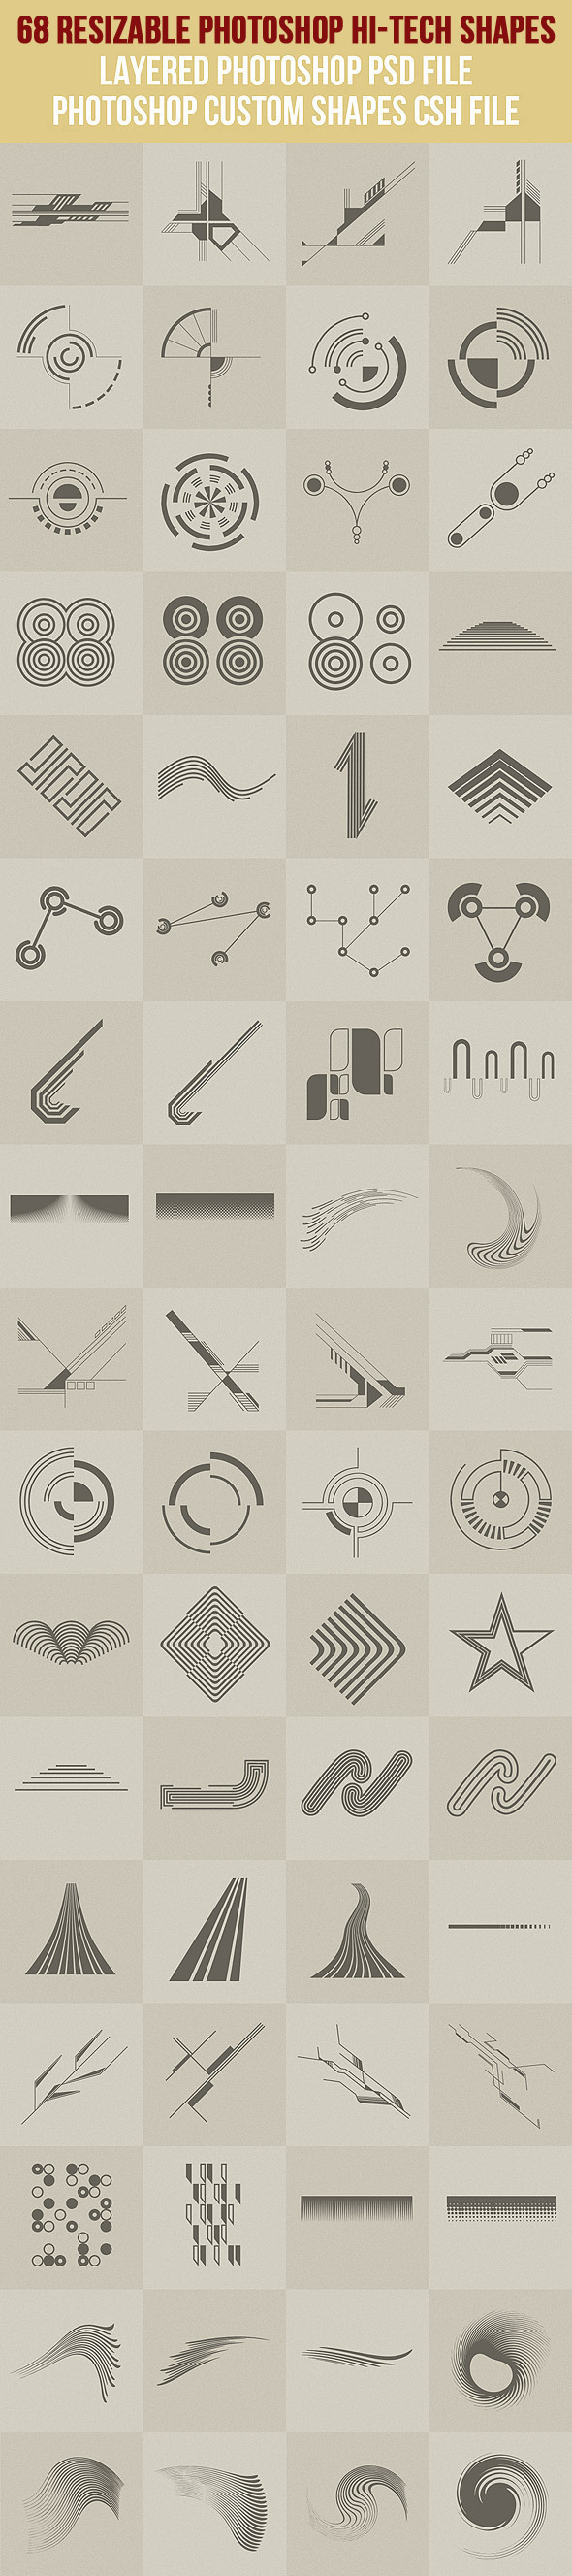 68 Photoshop Hi-Tech Shapes 1 - Symbols Shapes